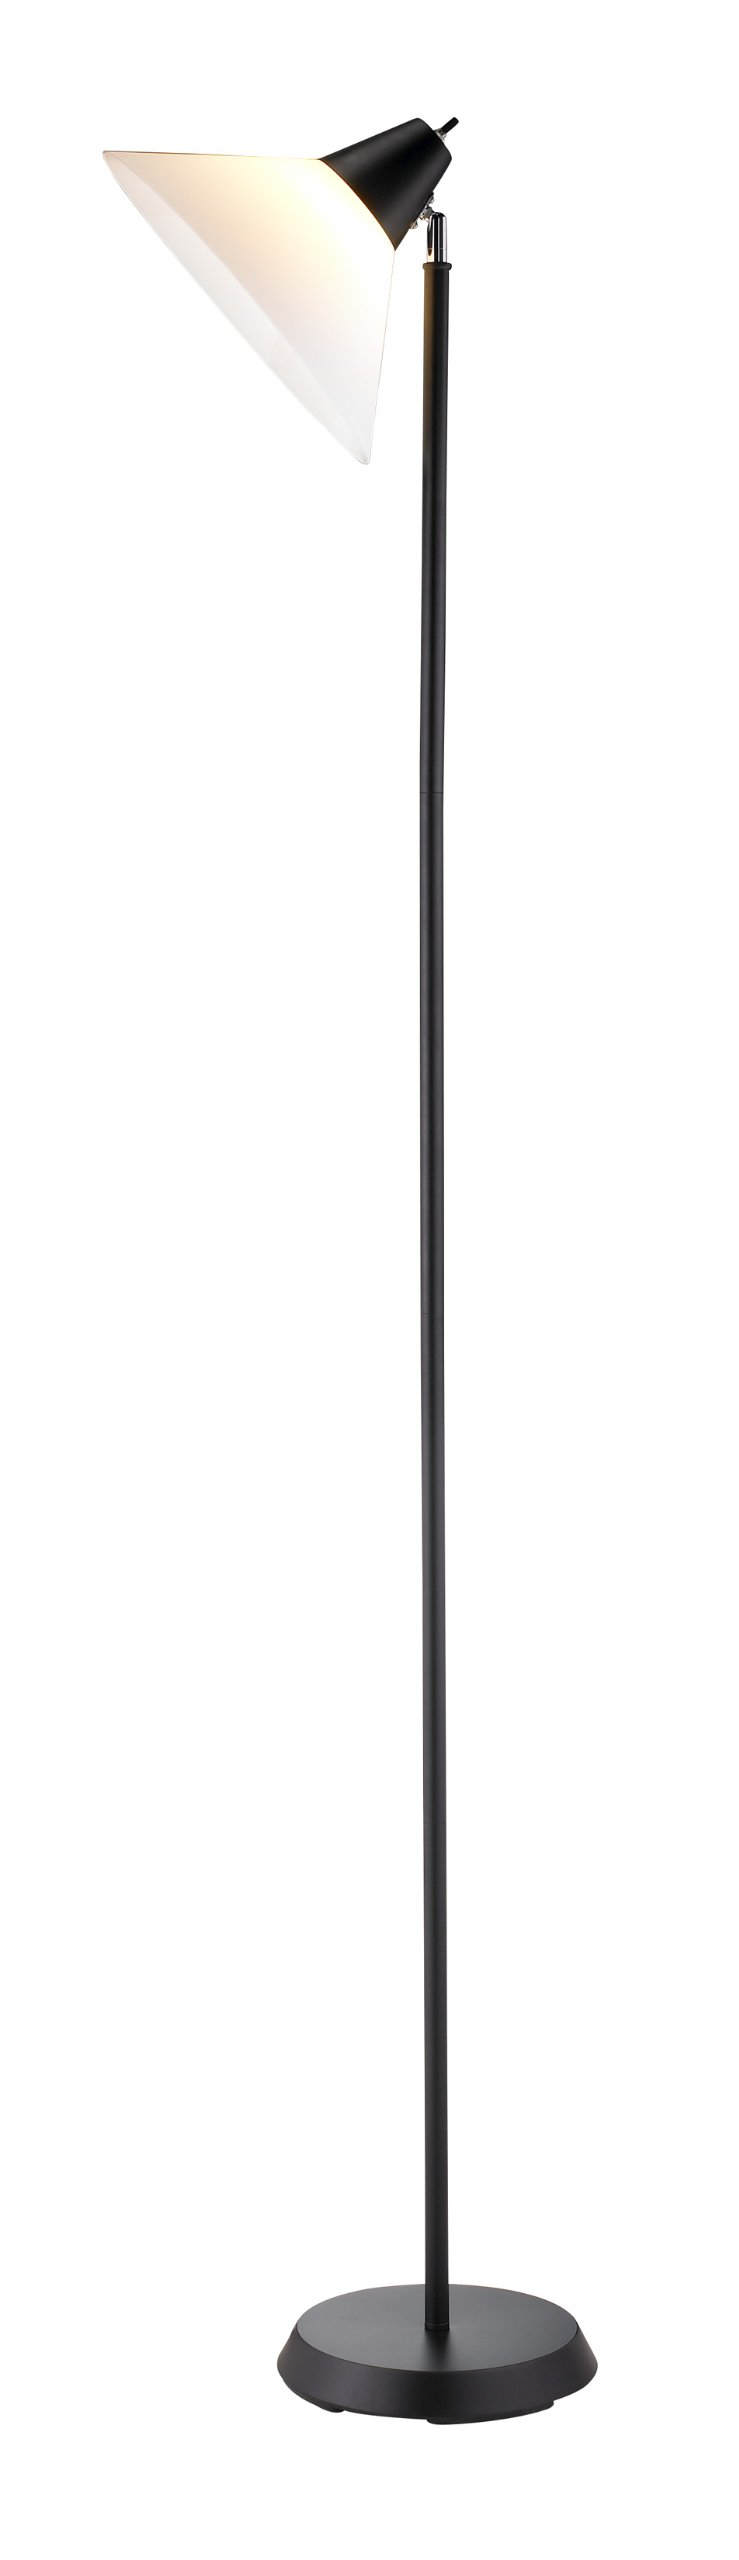 Adesso 3677-01 Swivel Floor Lamp, Black Finish - With it's versatile design, this lamp easily integrates into the home office, dorm, living room or studio décor The adjustable white plastic shade allows light to be directed horizontally and vertically On/Off Rotary Socket Switch - living-room-decor, living-room, floor-lamps - 51ojP%2B hkKL -